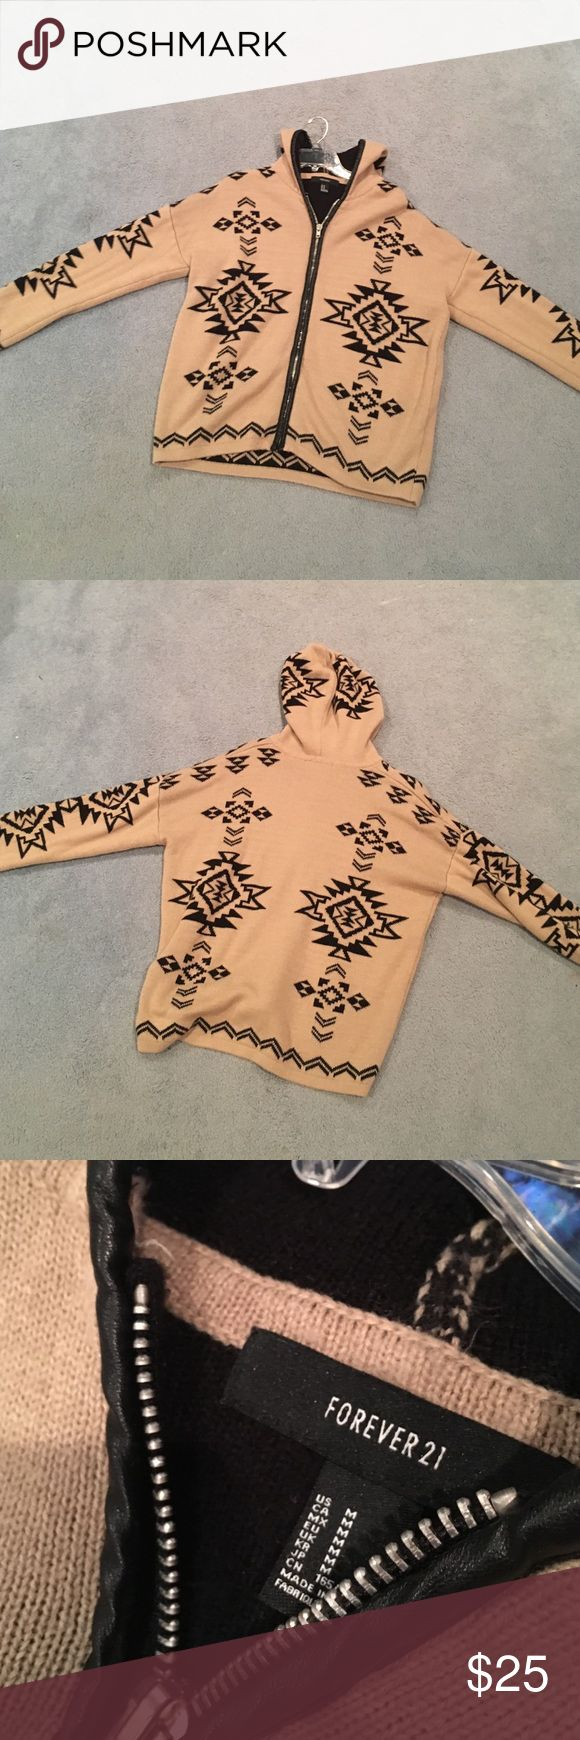 Aztec Sweater Forever 21 Aztec Zip Up Sweater: Great Condition! Super comfy, super warm tan hooded sweater with black Aztec designs. Only worn twice, Size M. I usually wear an XS/S and this fits well and has a cute baggy and comfy look: Perfect with leggings! 😊 Forever 21 Sweaters